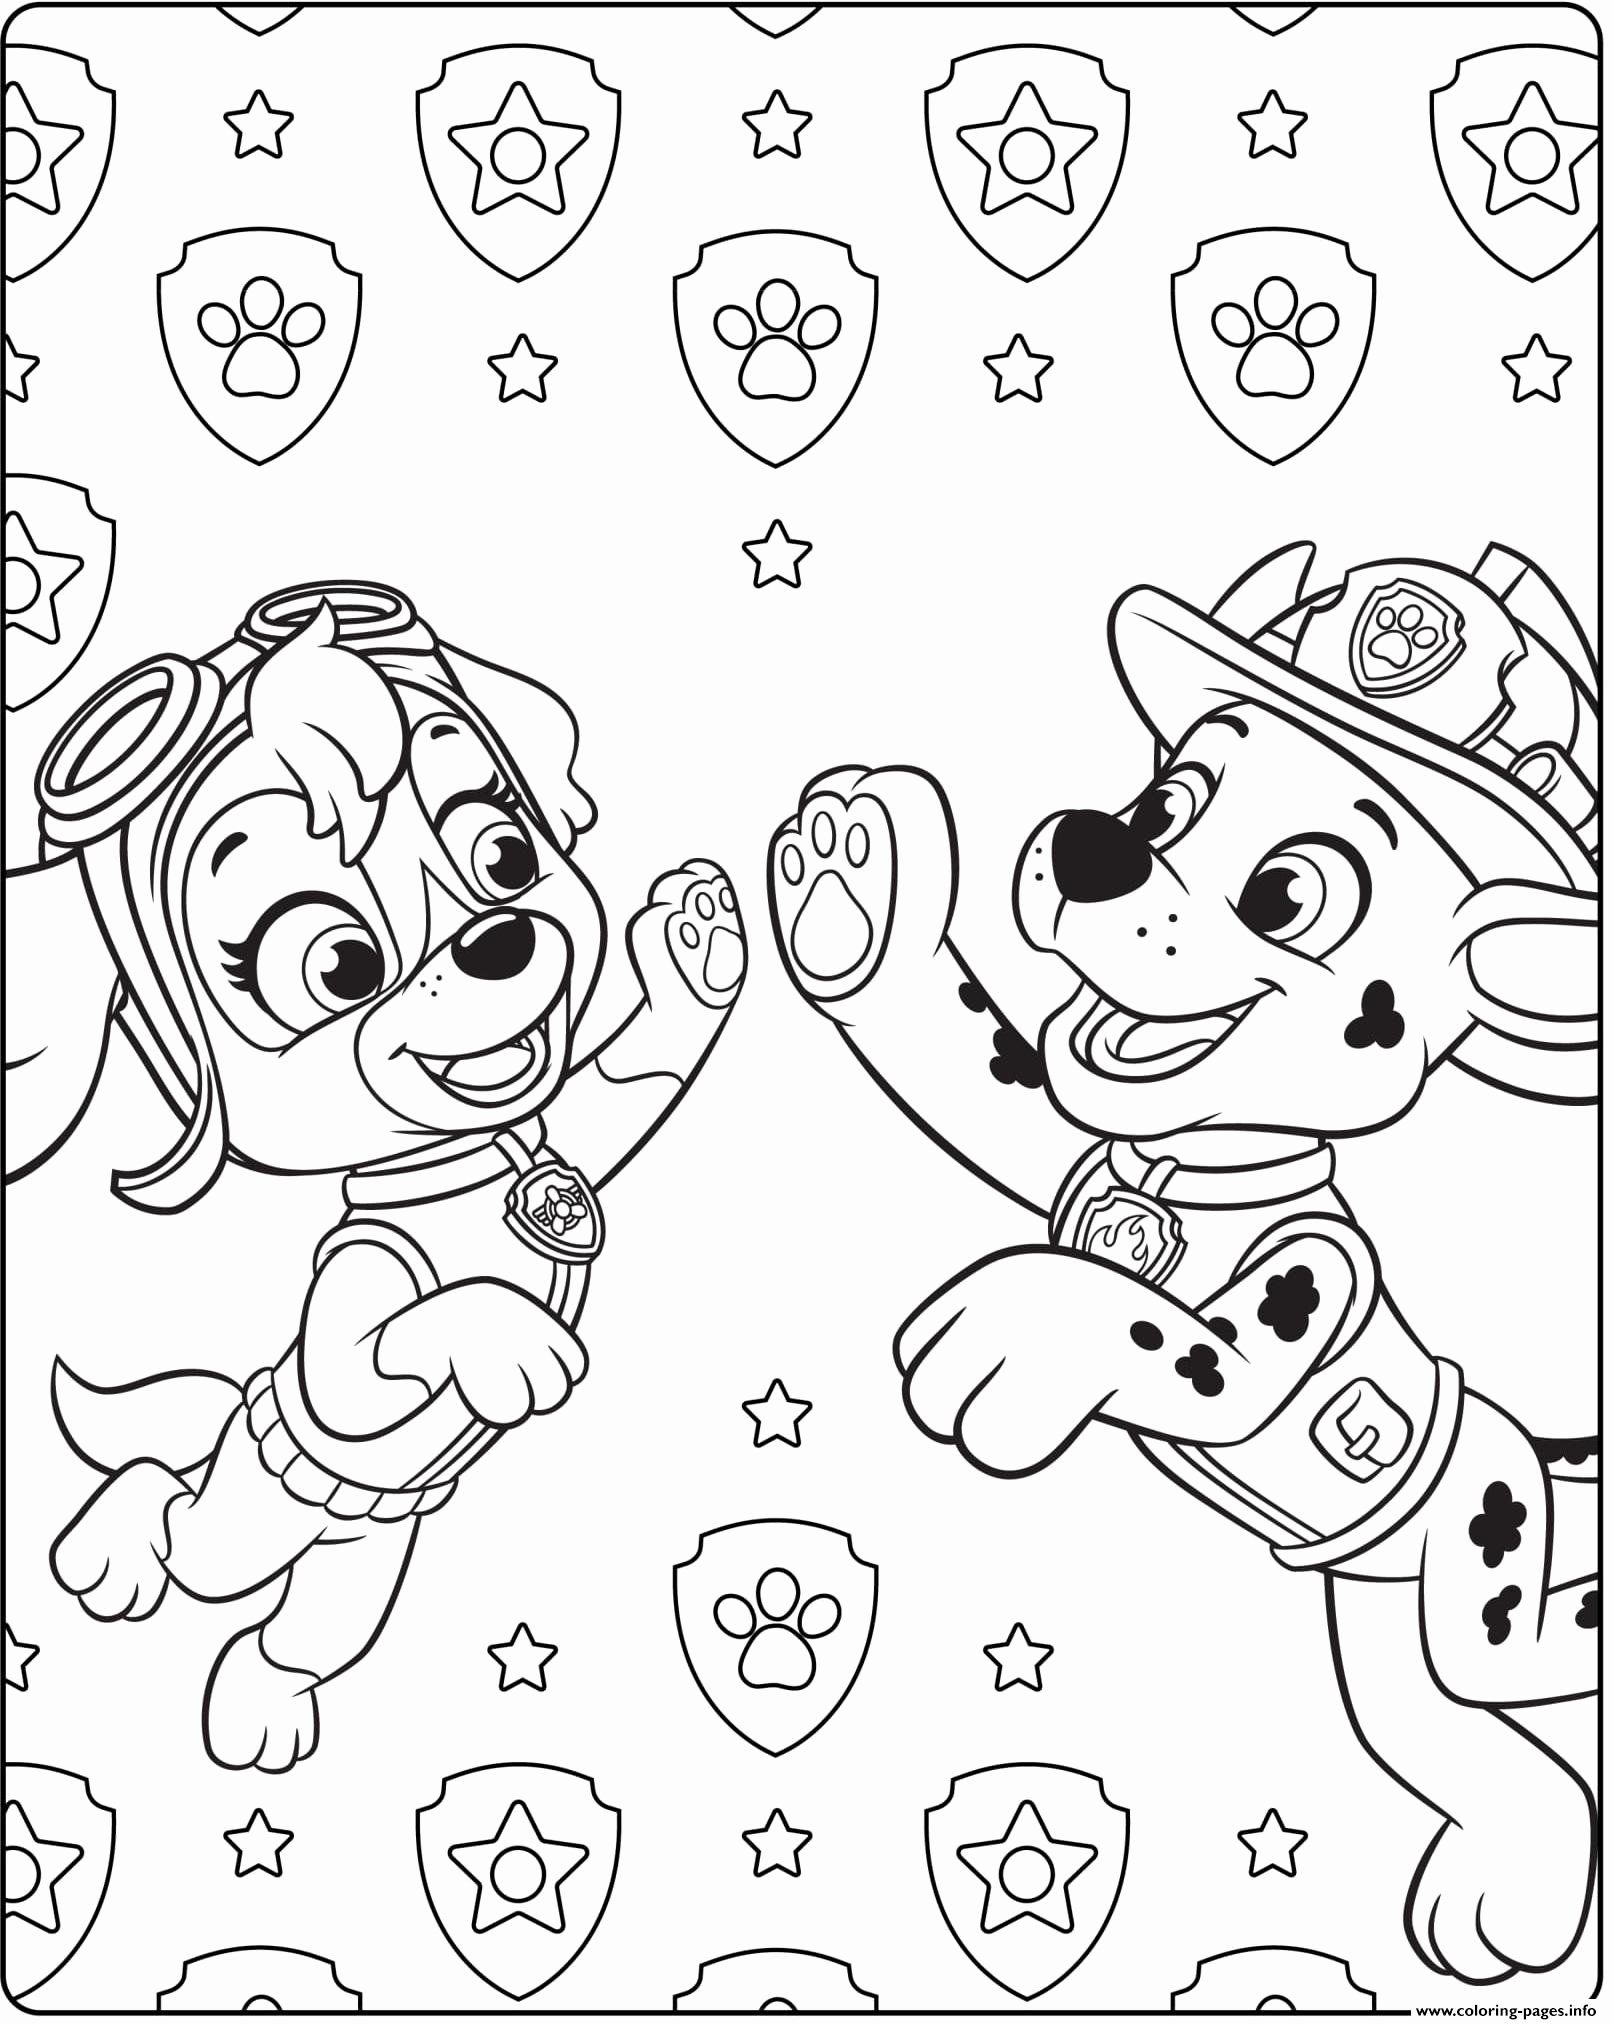 Paw Patrol Coloring Game Awesome Coloring Pages Coloring Zuma Paw Patrol Phenomenal Best Paw Patrol Coloring Paw Patrol Coloring Pages Birthday Coloring Pages